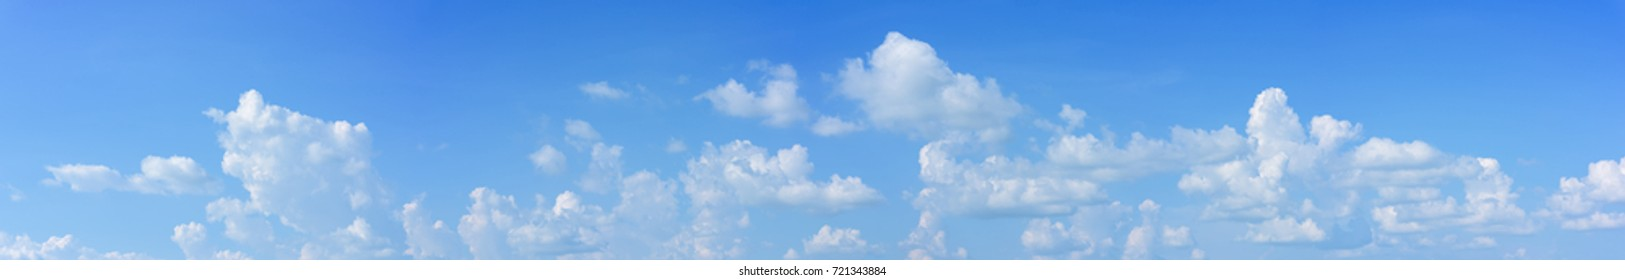 panoramic sky with white clouds